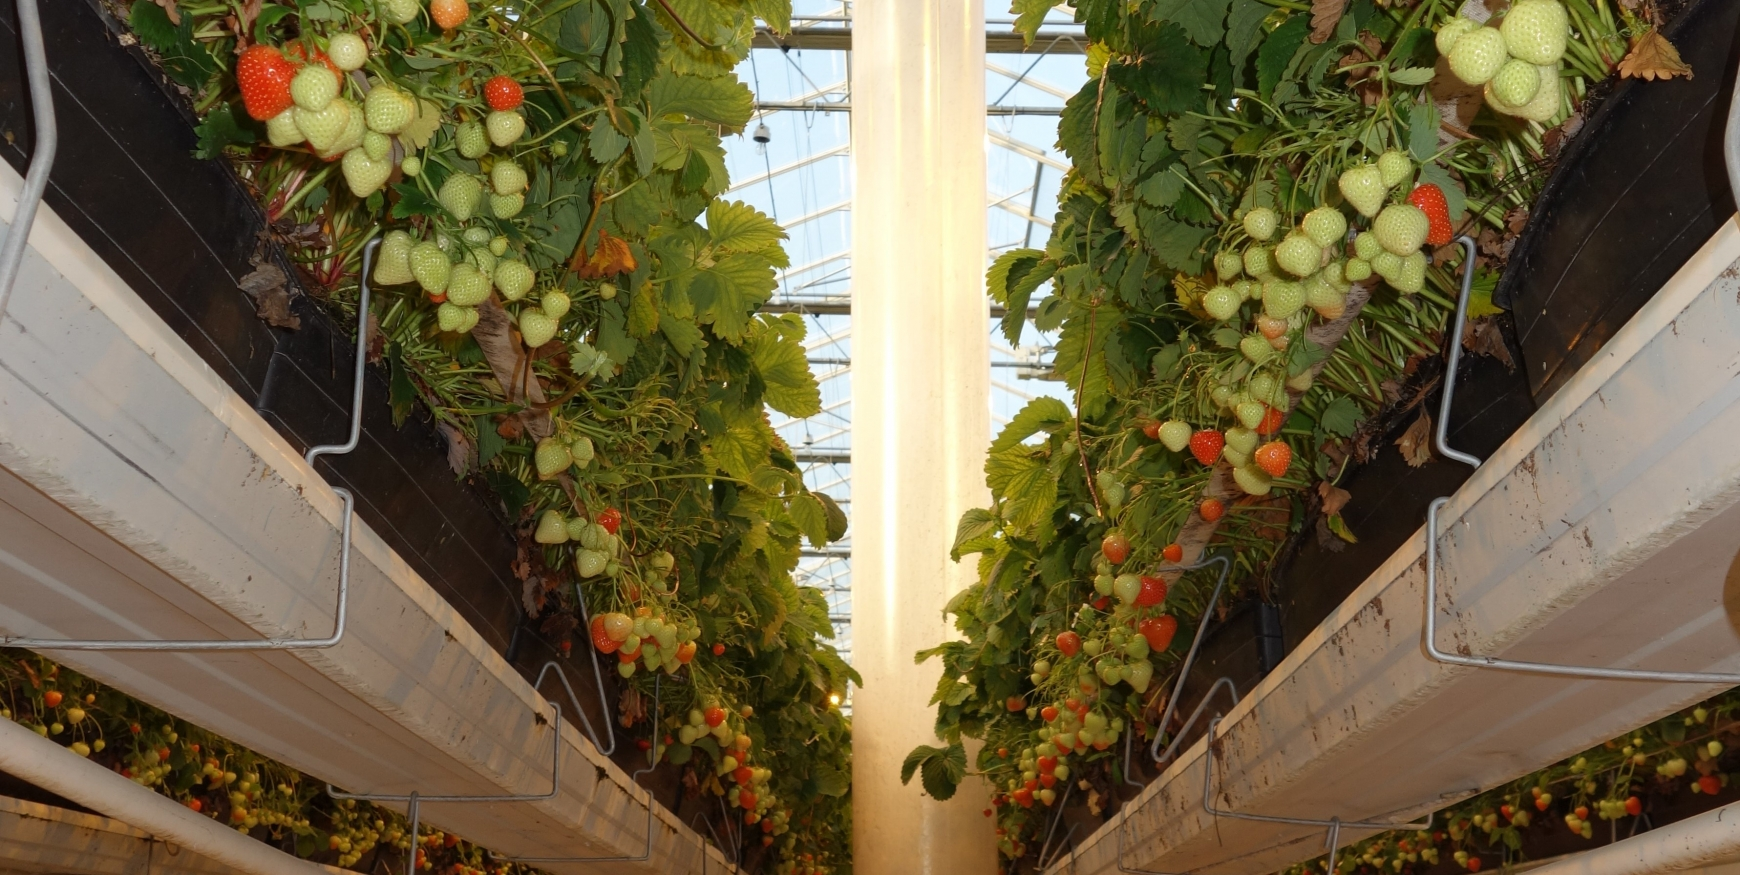 Strawberries growing in a greenhouse with a vertical fan